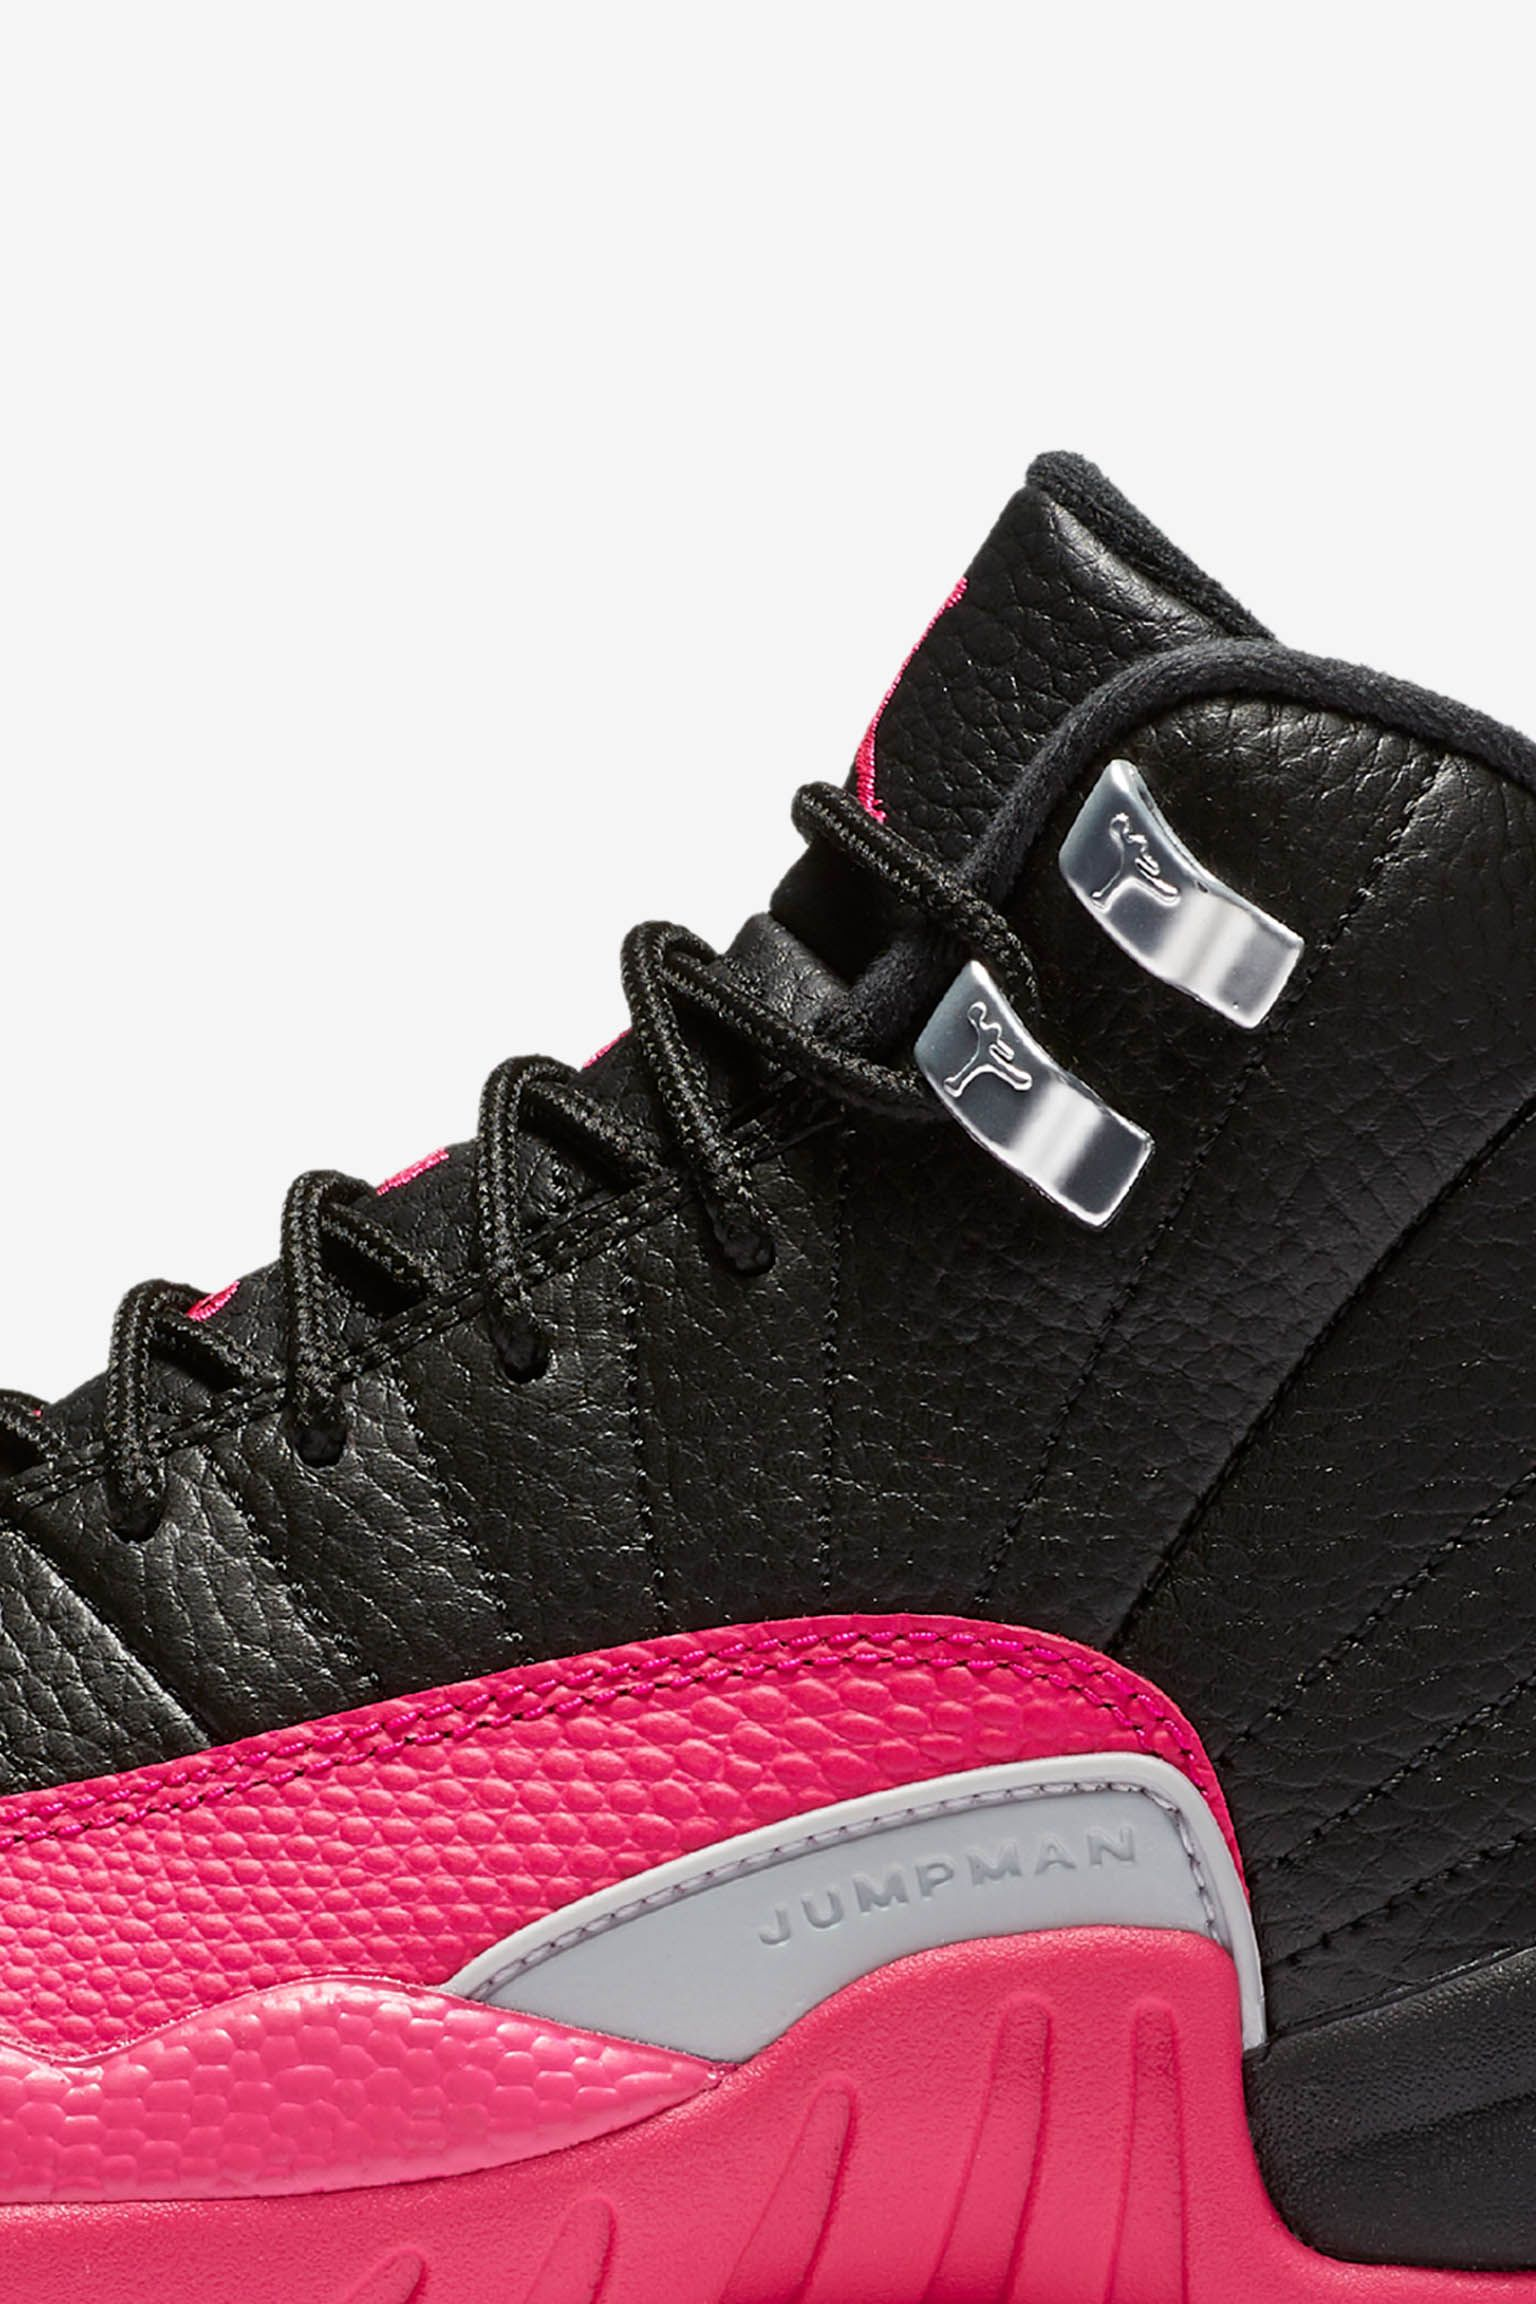 Girls' Air Jordan 12 Retro 'Black & Deadly Pink' Release Date